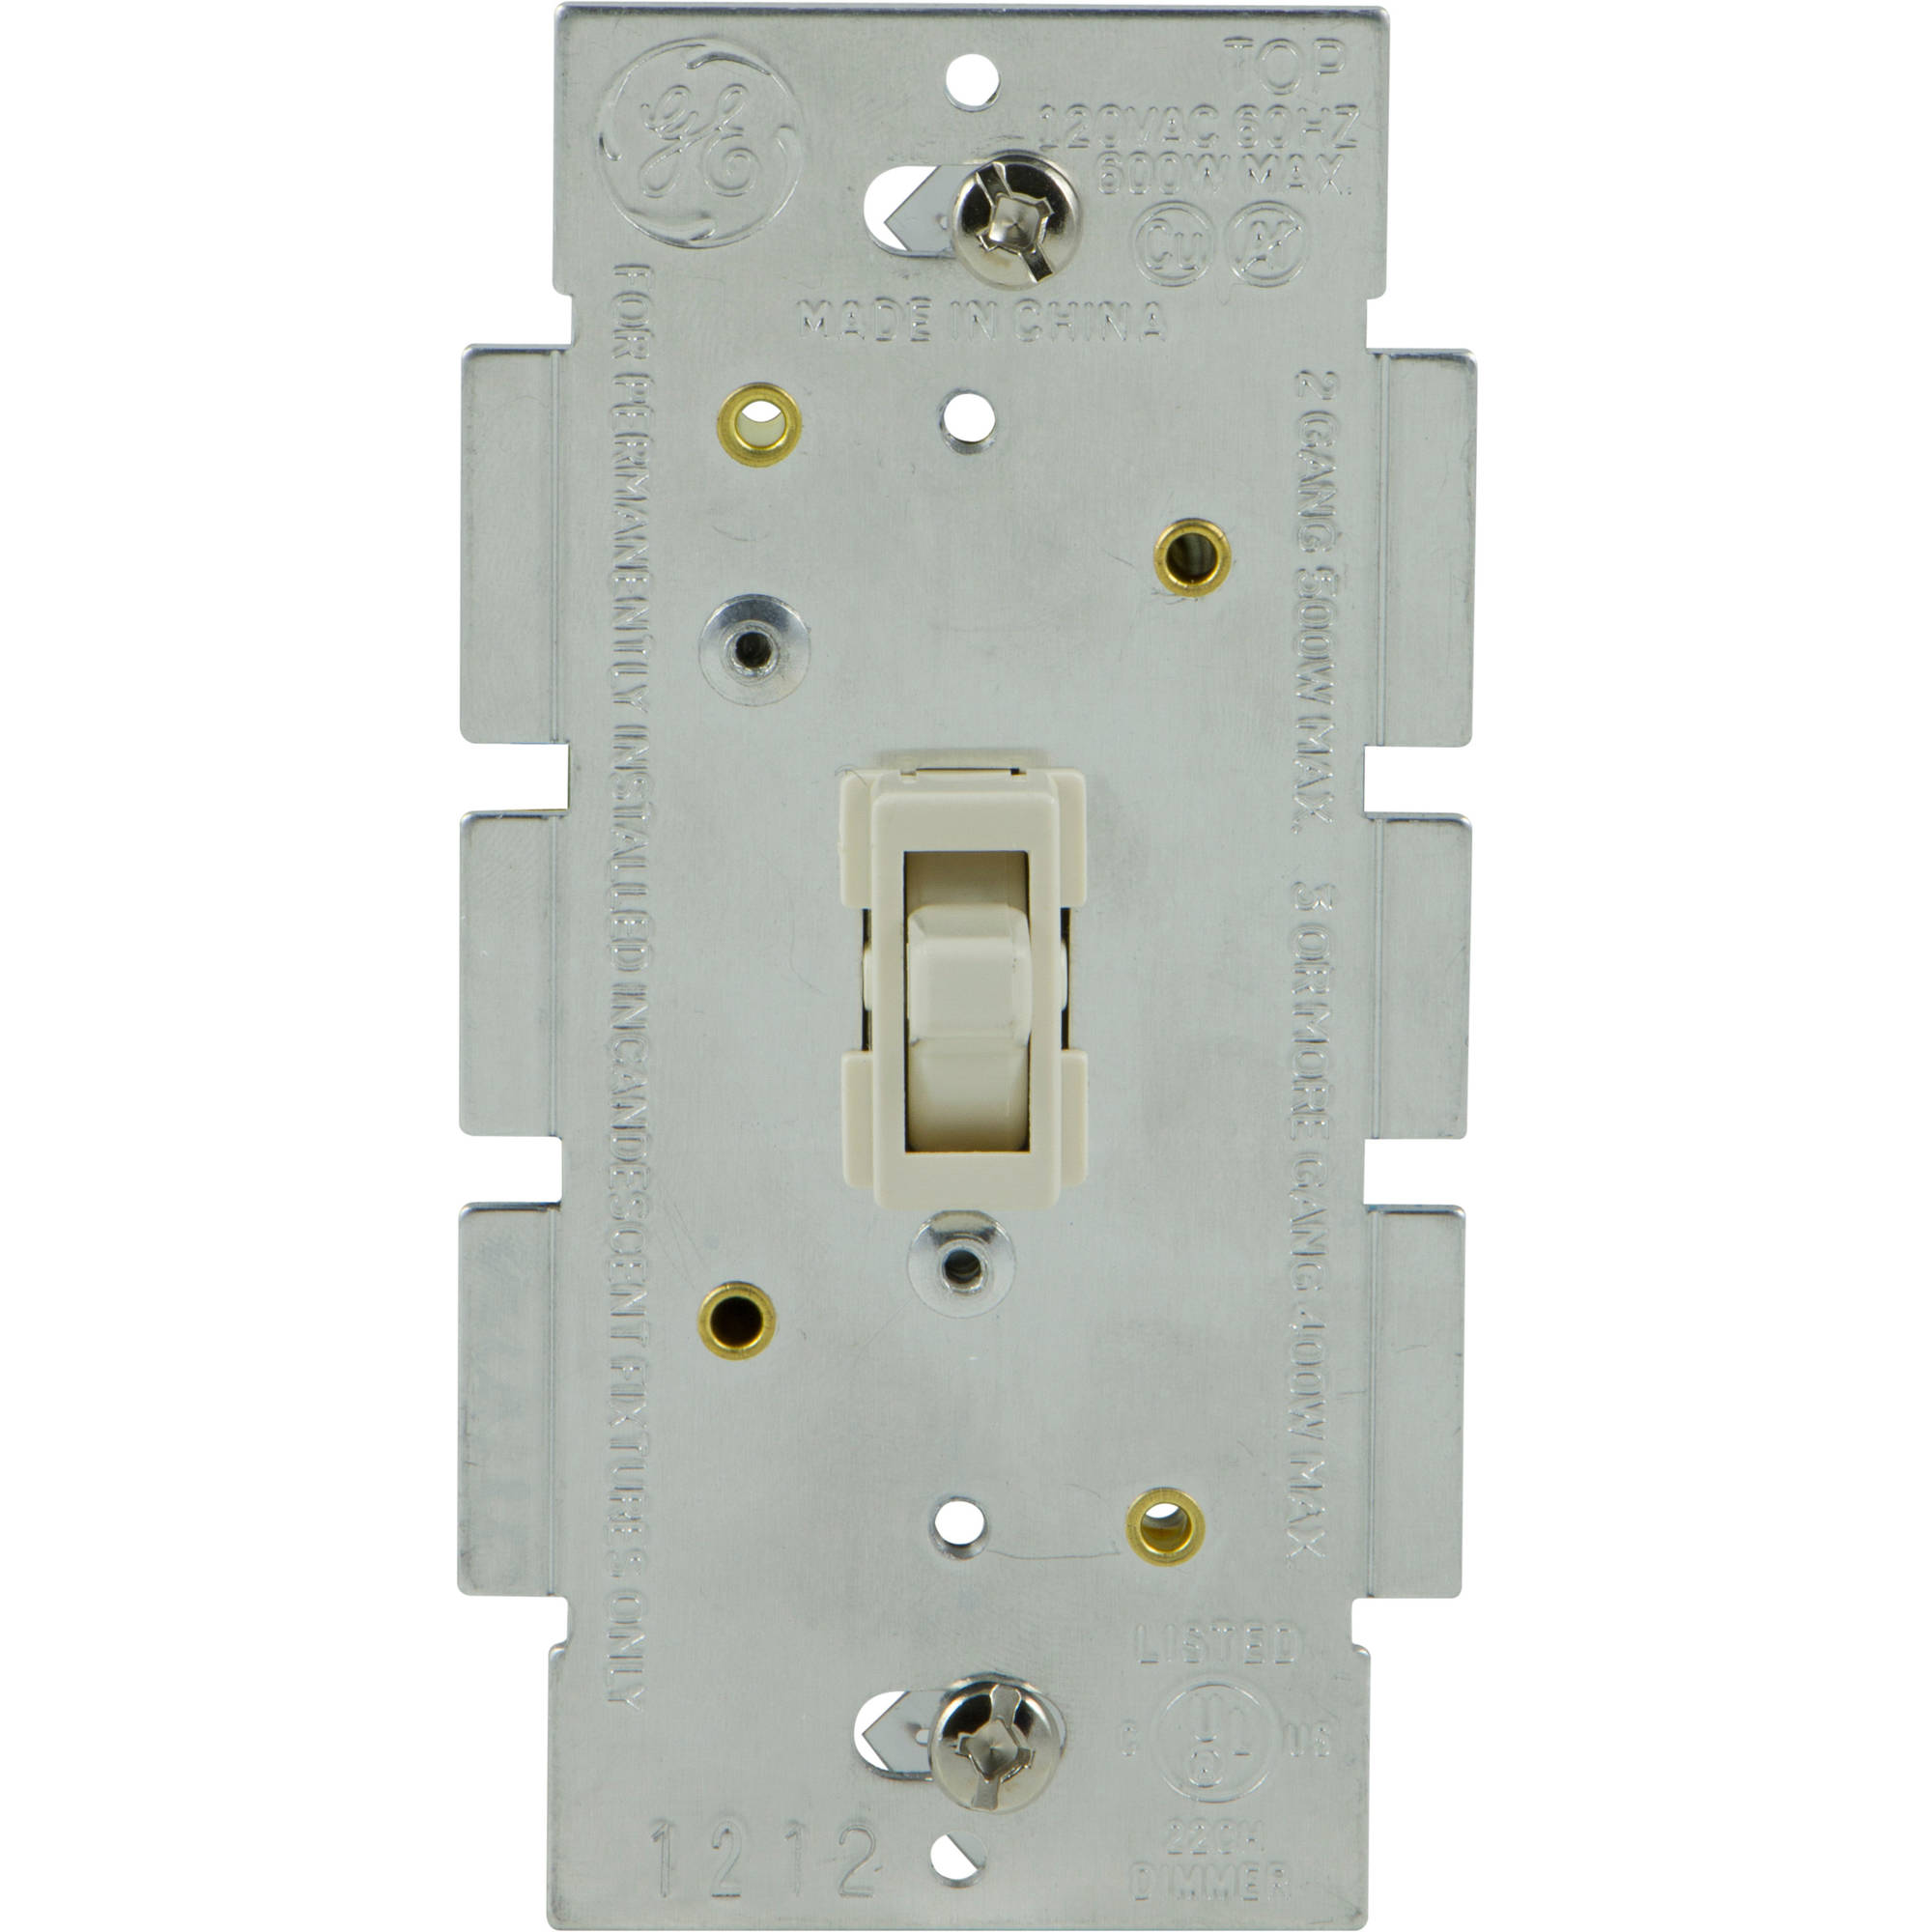 GE In-Wall Light Switch Dimmer, for Incandescent, LED, CFL Dimmable Bulbs, Single Pole,... by Jasco Products Company, LLC